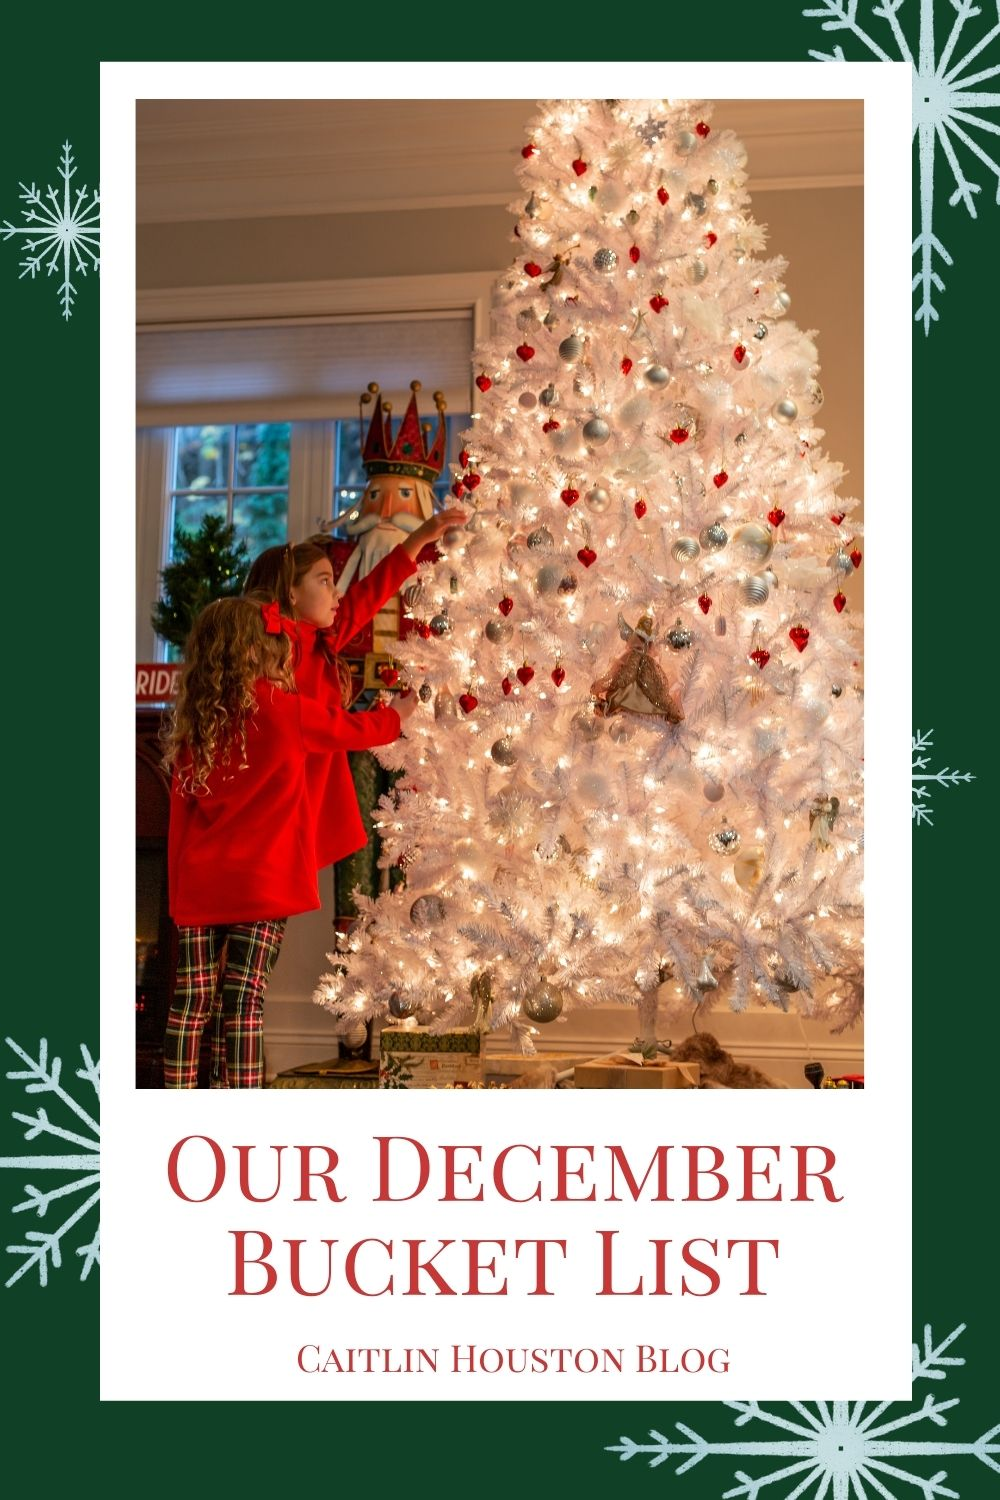 Our December Bucket List - little girls putting ornaments on white christmas tree